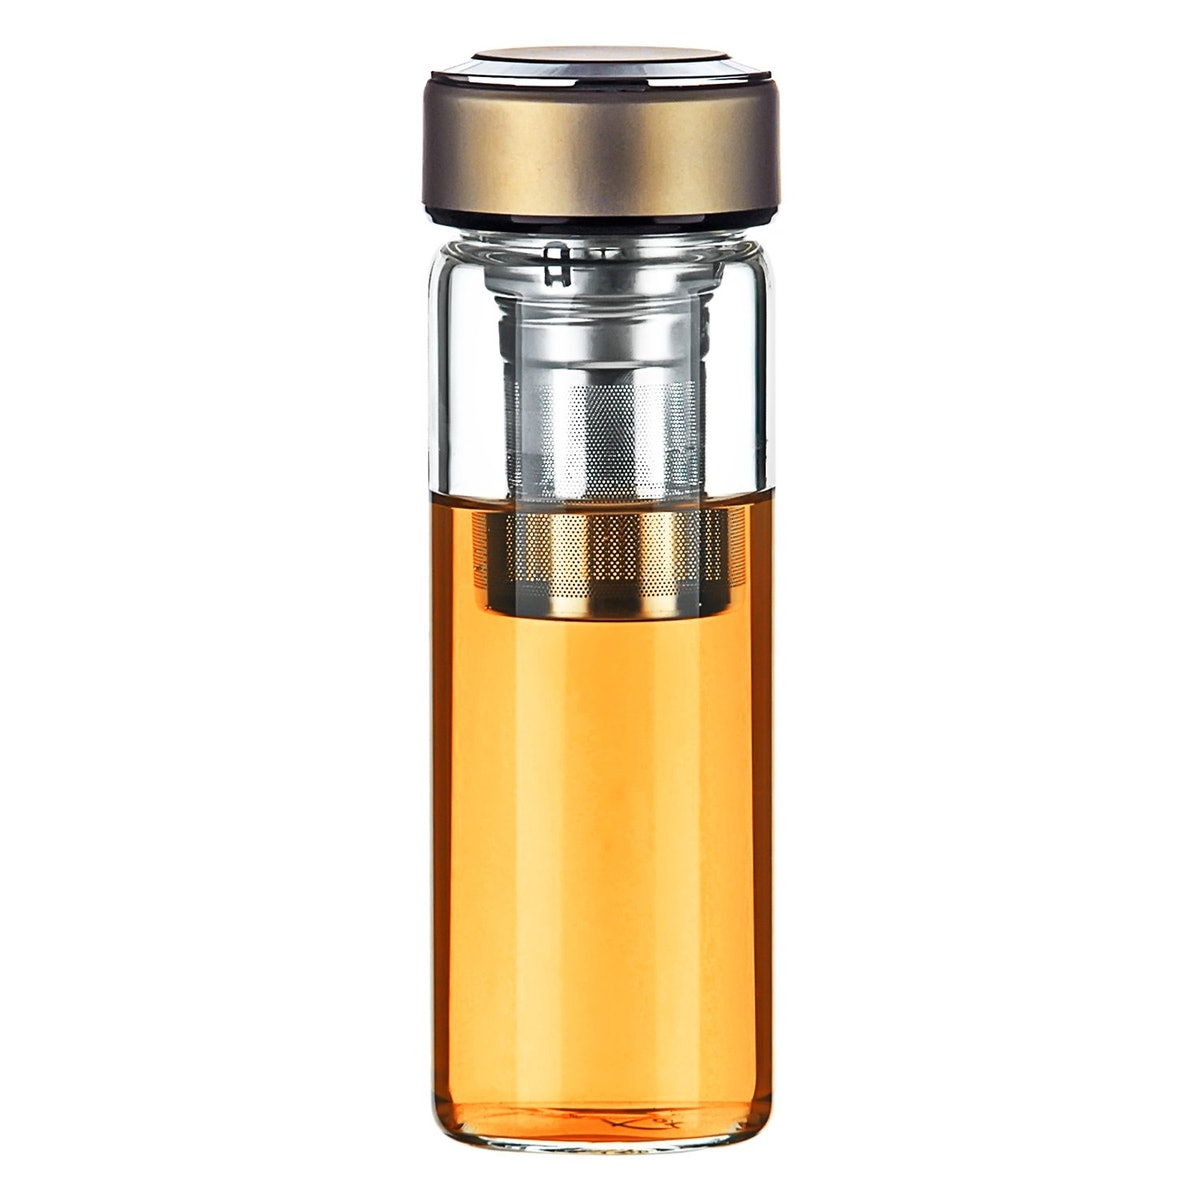 Justfwater Fruit And Tea Infuser Bottle